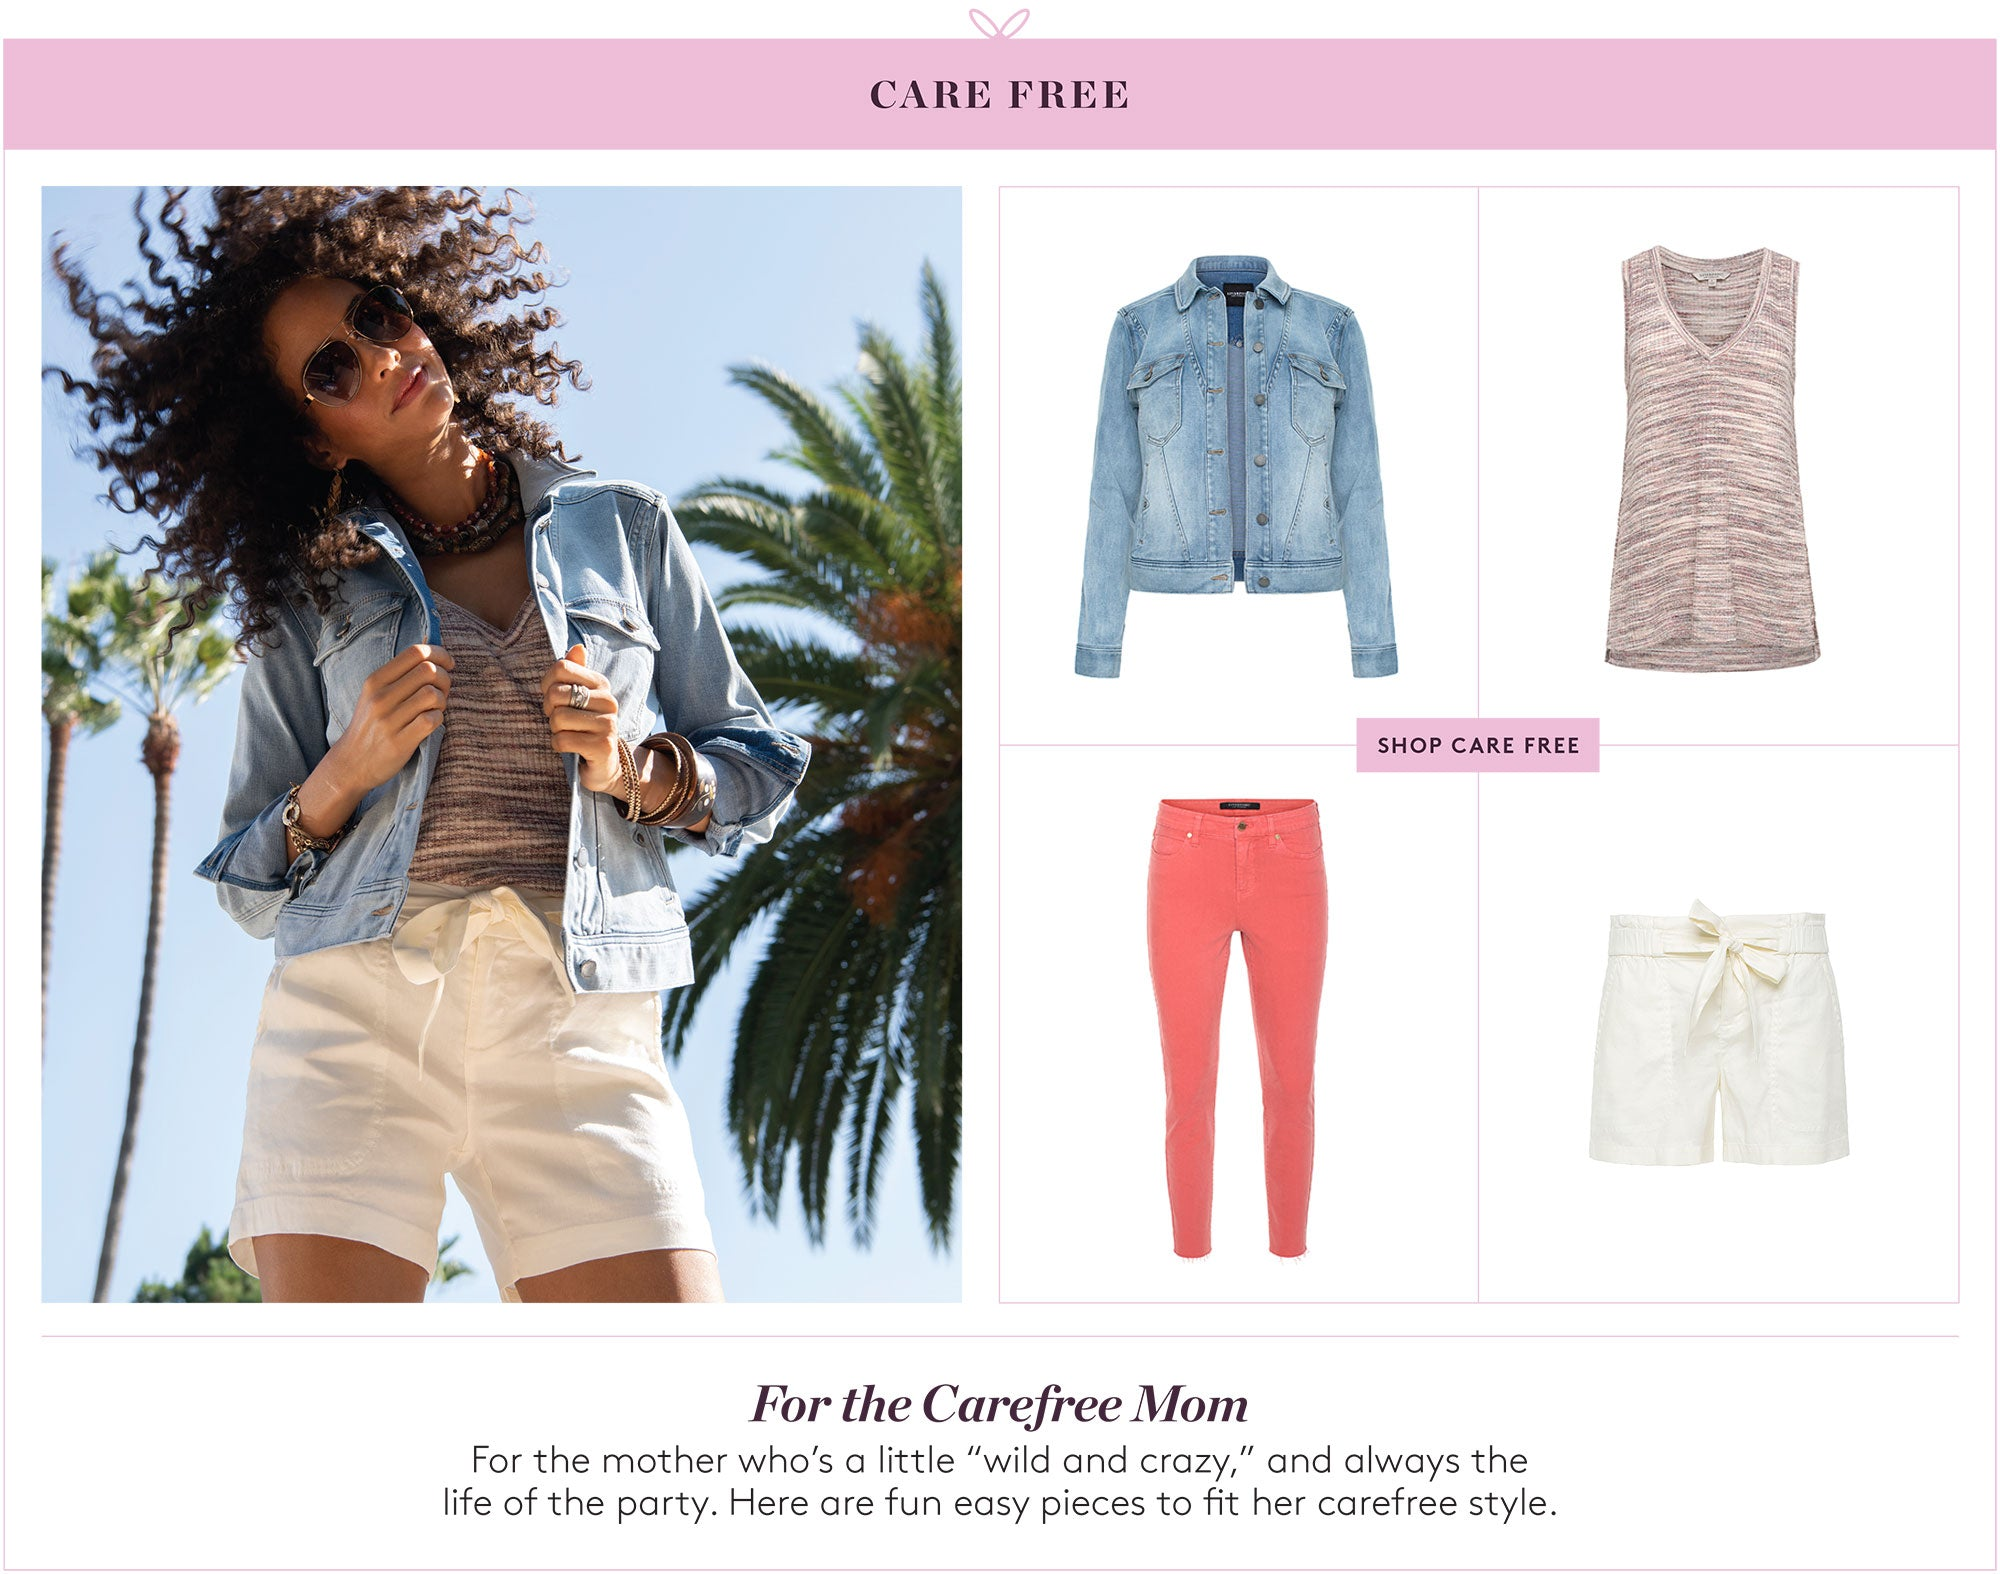 """For the Carefree Mom: For the mother who's a little """"wild and crazy,"""" and always the life of the party.  here are fun easy pieces to fit her carefree styles."""